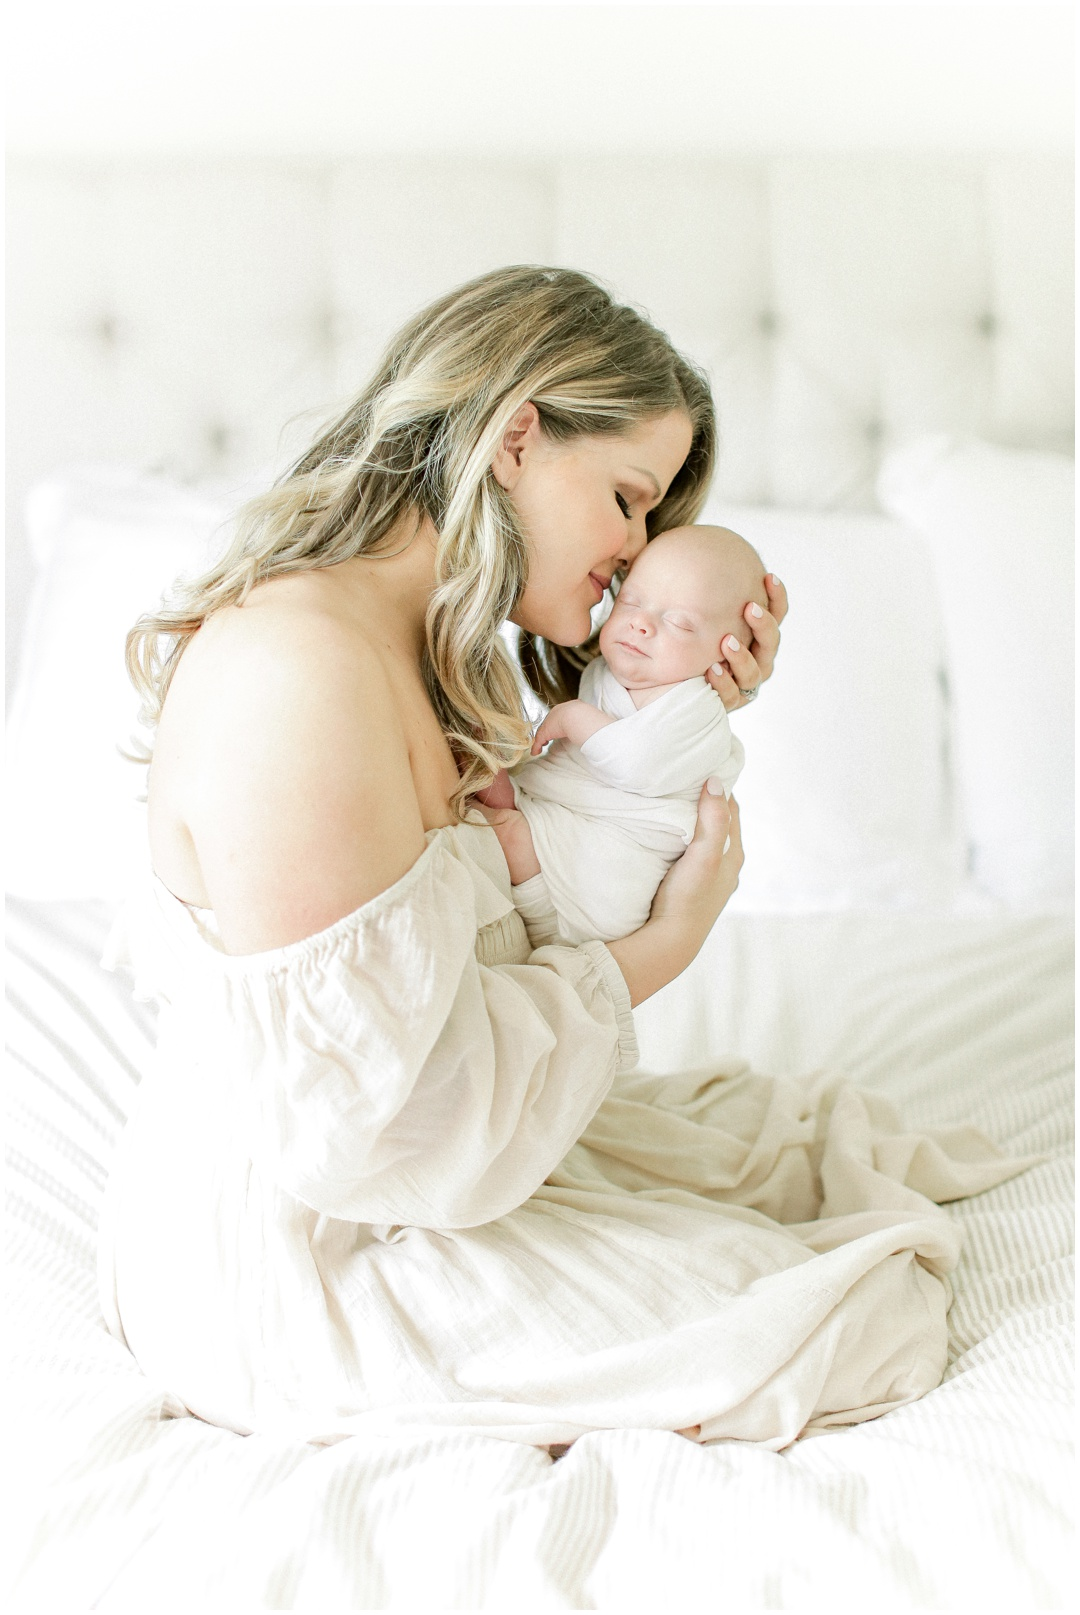 Newport_Beach_Newborn_Light_Airy_Natural_Photographer_Newport_Beach_In-Home_Photographer_Orange_County_Family_Photographer_Cori_Kleckner_Photography_Huntington_Beach_Photographer_Family_OC_Newborn_Meghan_Sullivan_Newborn_Family_Greer_Sullivan_3251.jpg